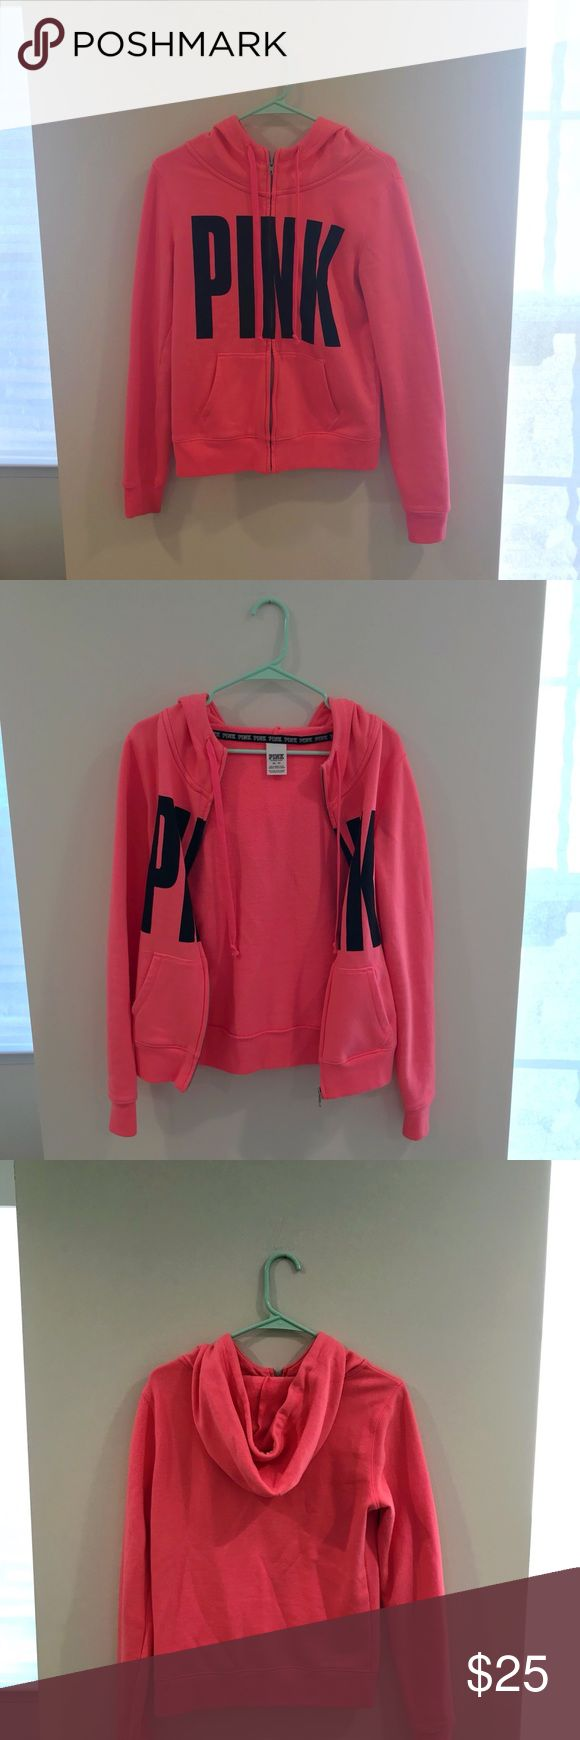 Victoria's Secret PINK hot pink zip up hoodie Victoria's Secret PINK hot pink zip up hoodie in size XS. Super cozy and very warm. Lightly worn and the color is very vibrant. 60% cotton, 40% polyester. PINK Victoria's Secret Tops Sweatshirts & Hoodies